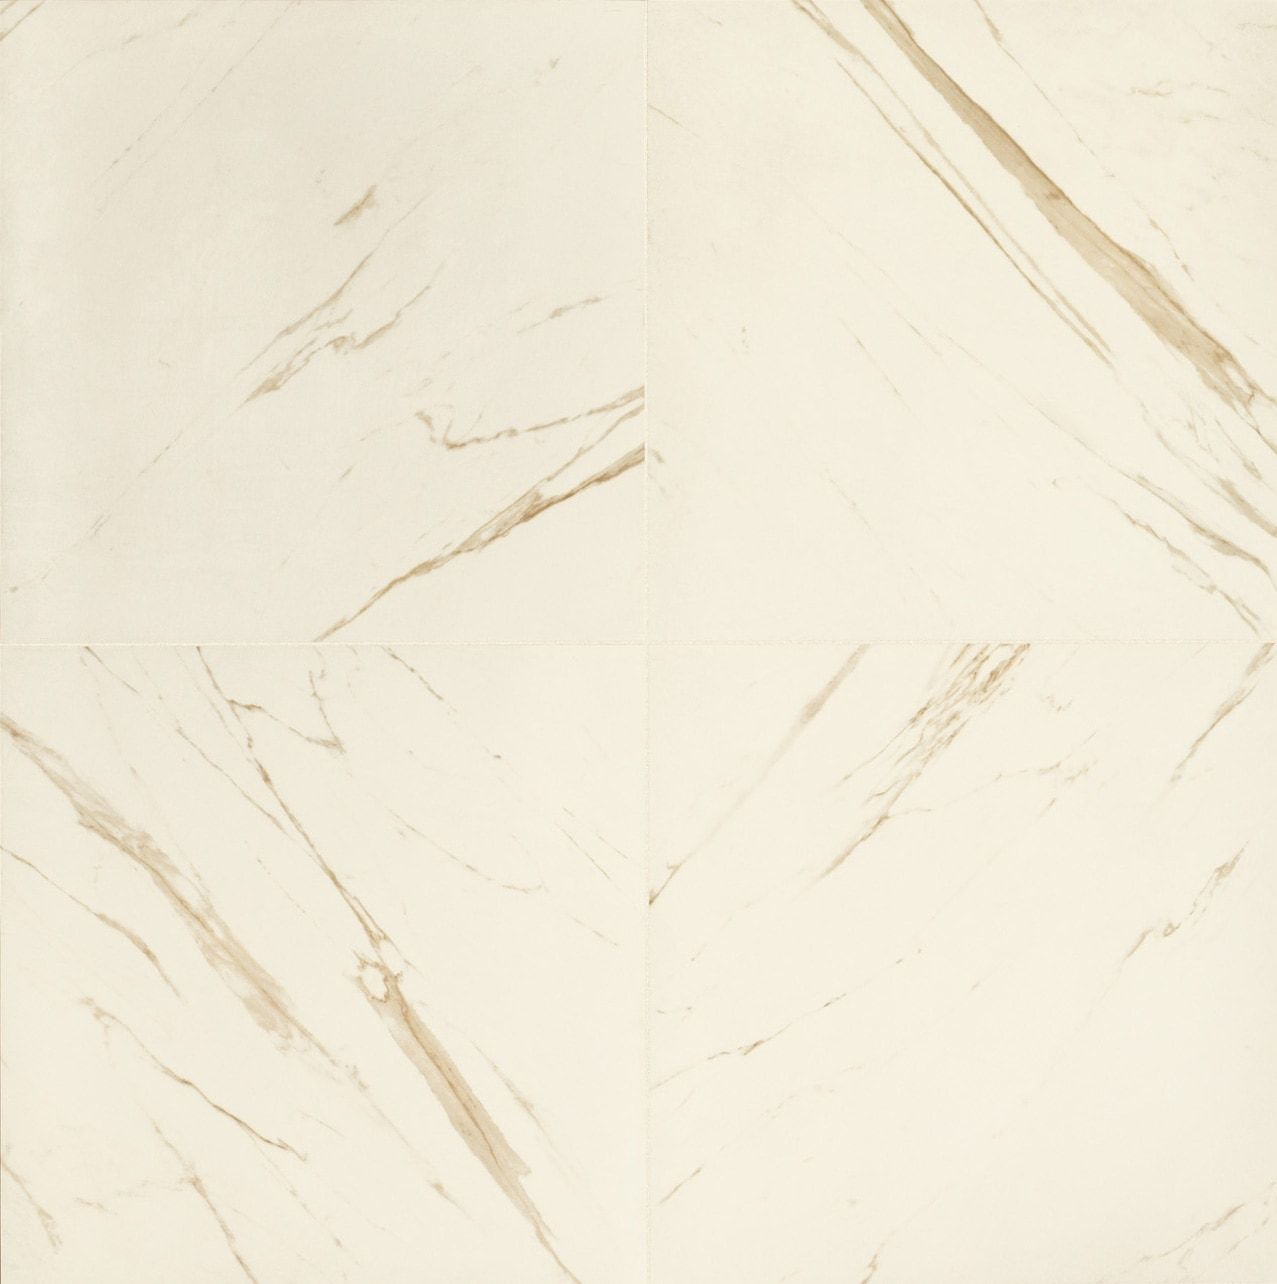 Versace Marble Bianco Cal poliert 58-5X58-5 cm 02400110-